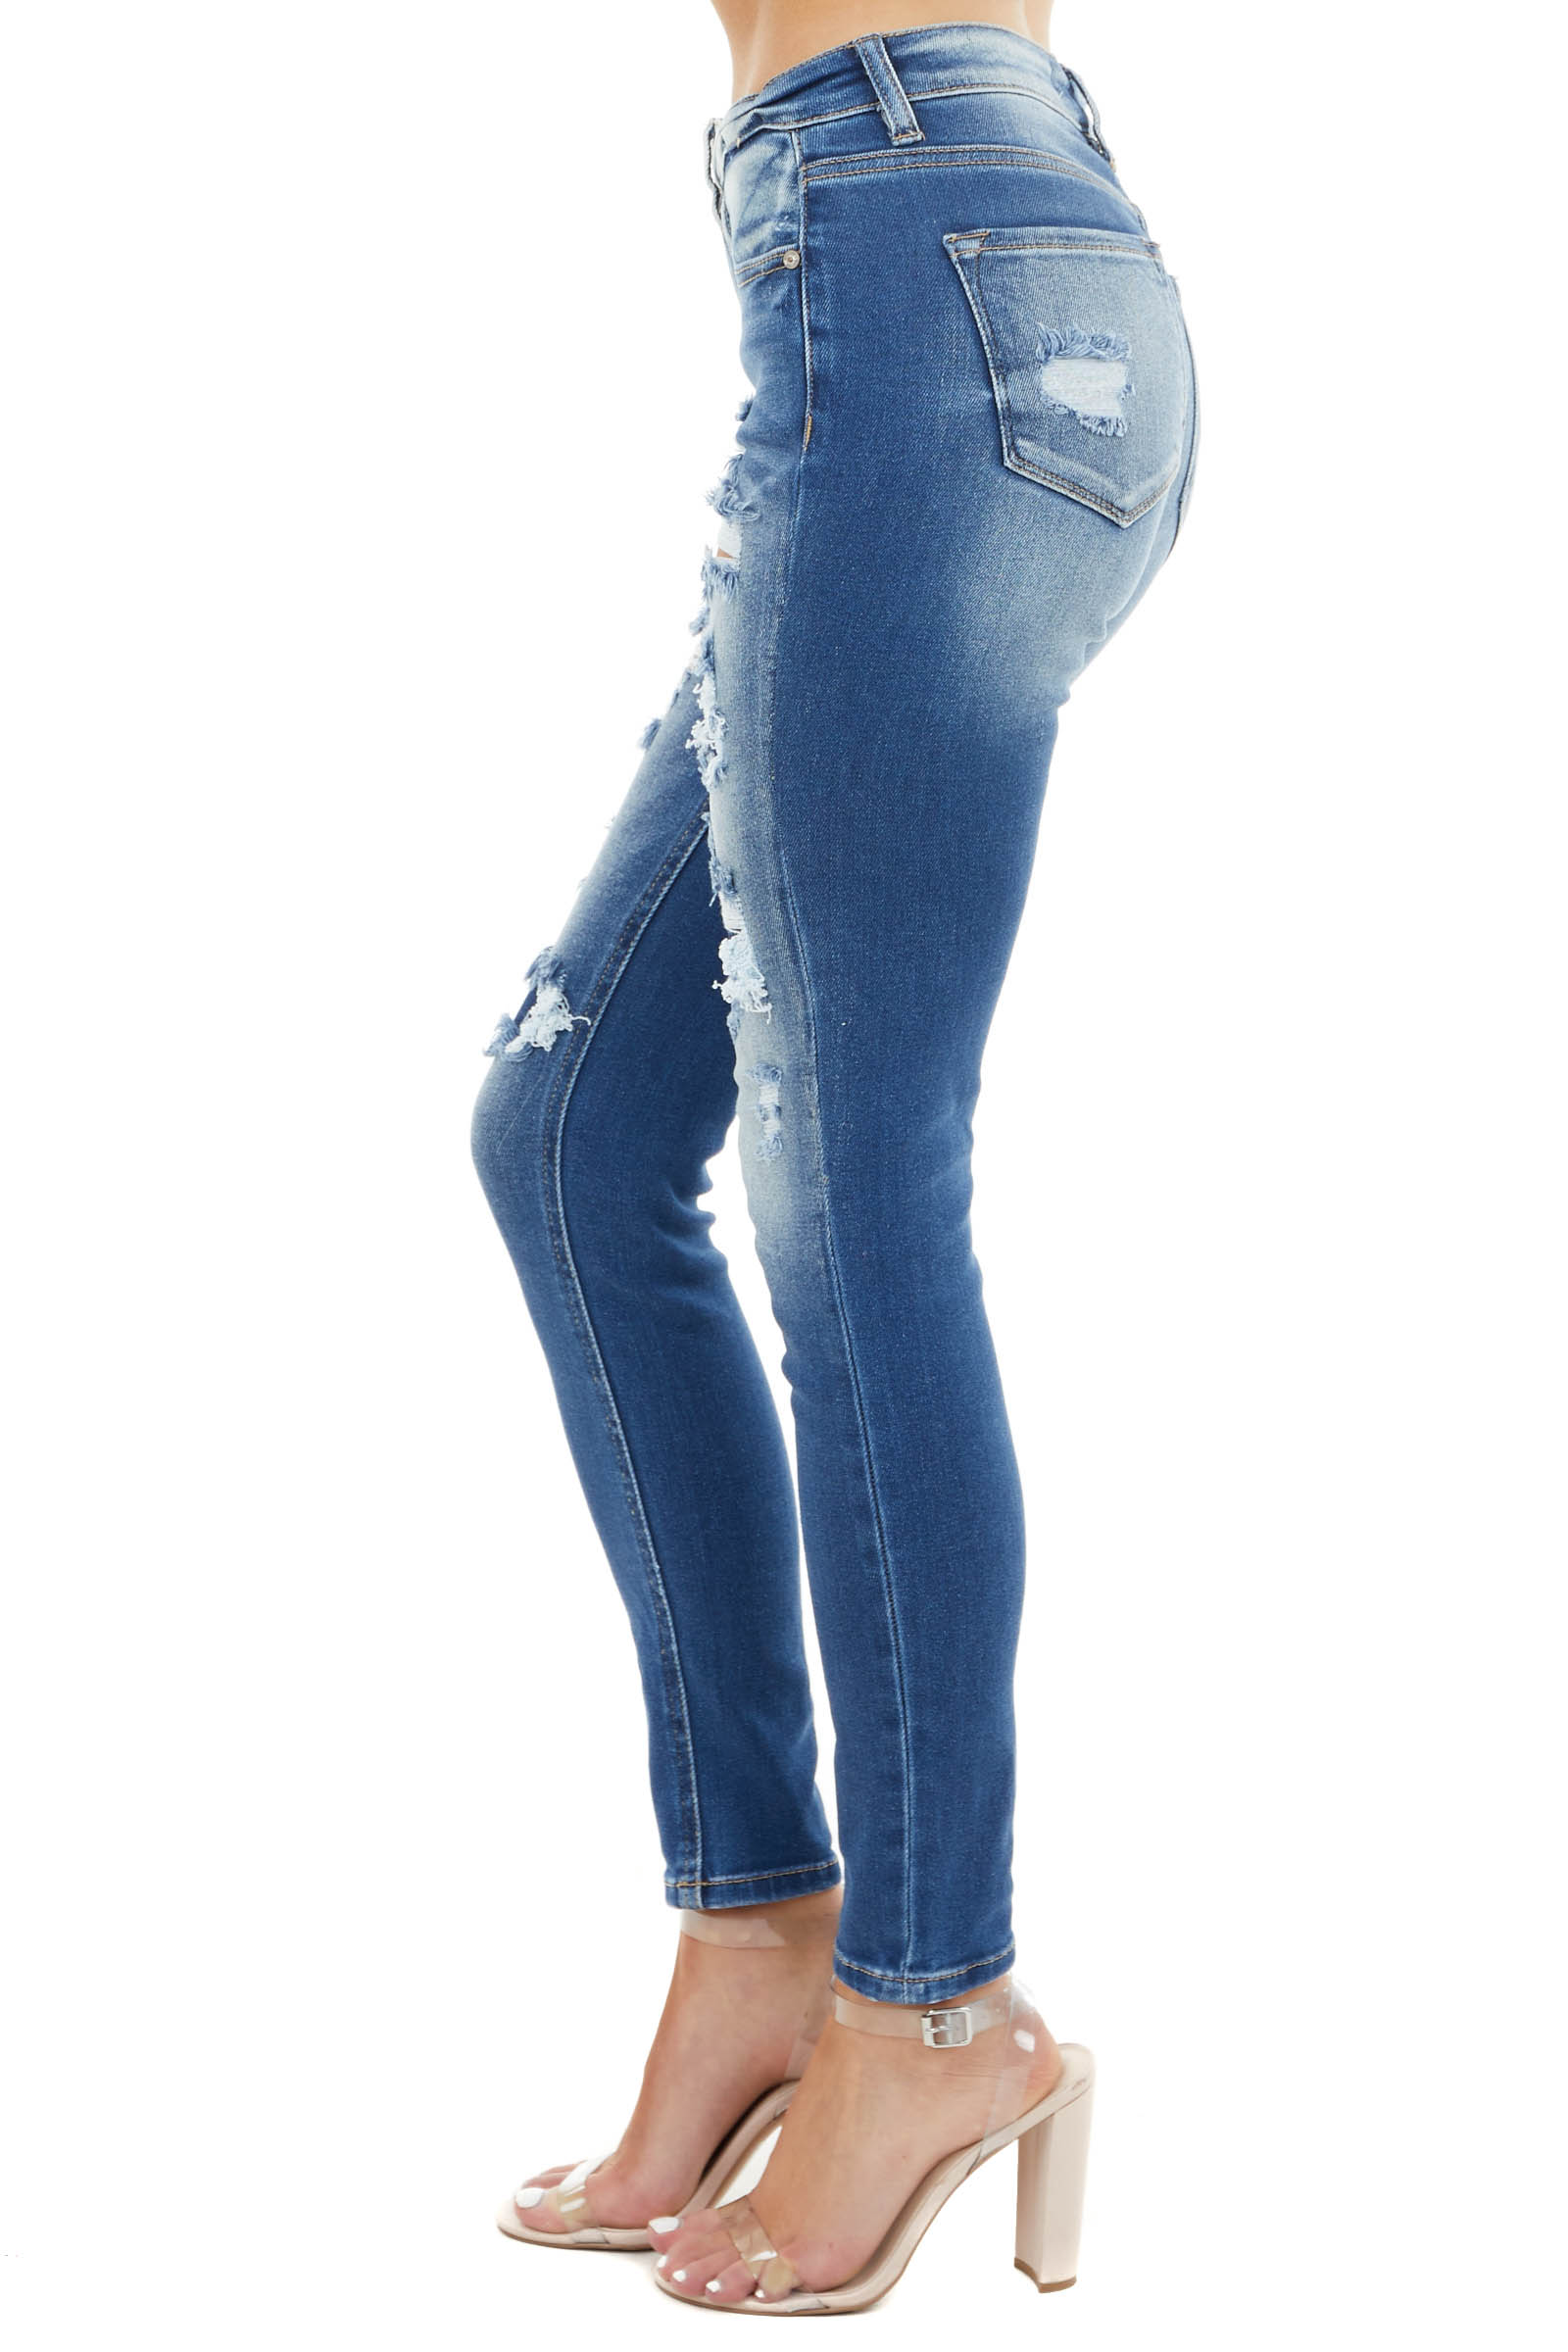 Medium Wash Distressed Mid Rise Skinny Jeans with Patches